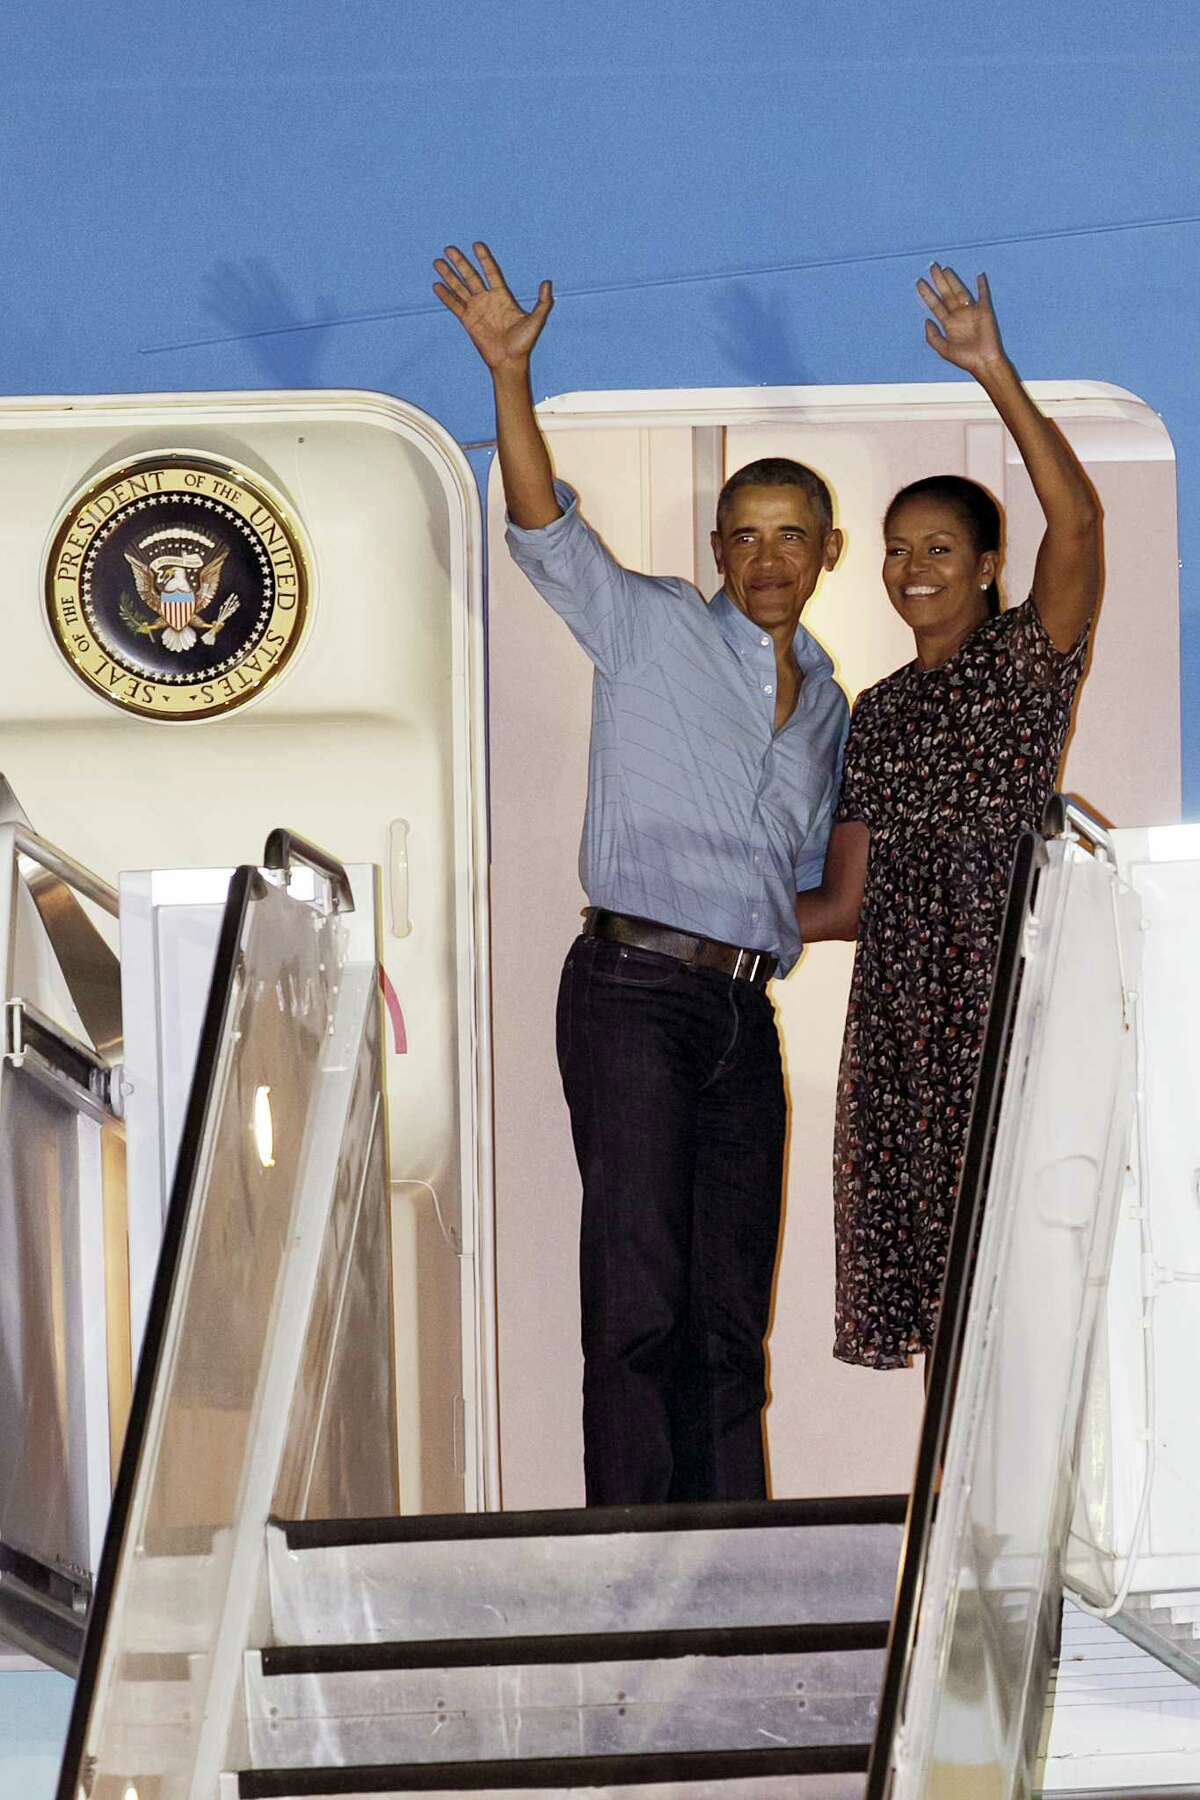 U.S. President Barack Obama and first lady Michelle Obama wave at people from Air Force One as they leave Joint Base Pearl Harbor-Hickam, adjacent to Honolulu, Hawaii, en route to Washington on Jan. 1, 2017 after their annual family vacation on the island of Oahu.